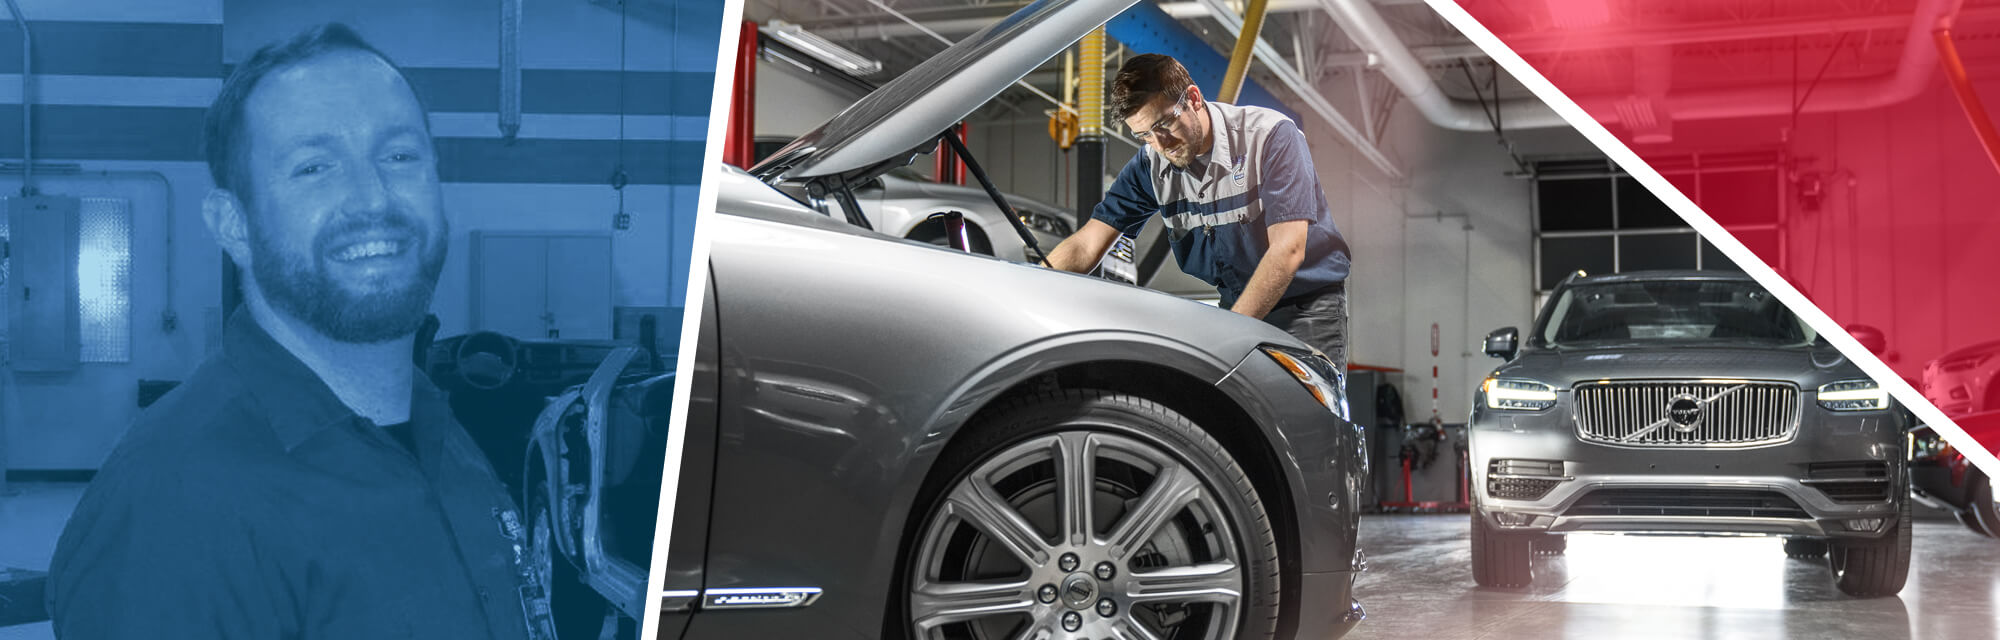 An image of Sean Callahan who is an Automotive Program instructor at UTI Norwood Massachusetts along with an image of a student working on a Volvo